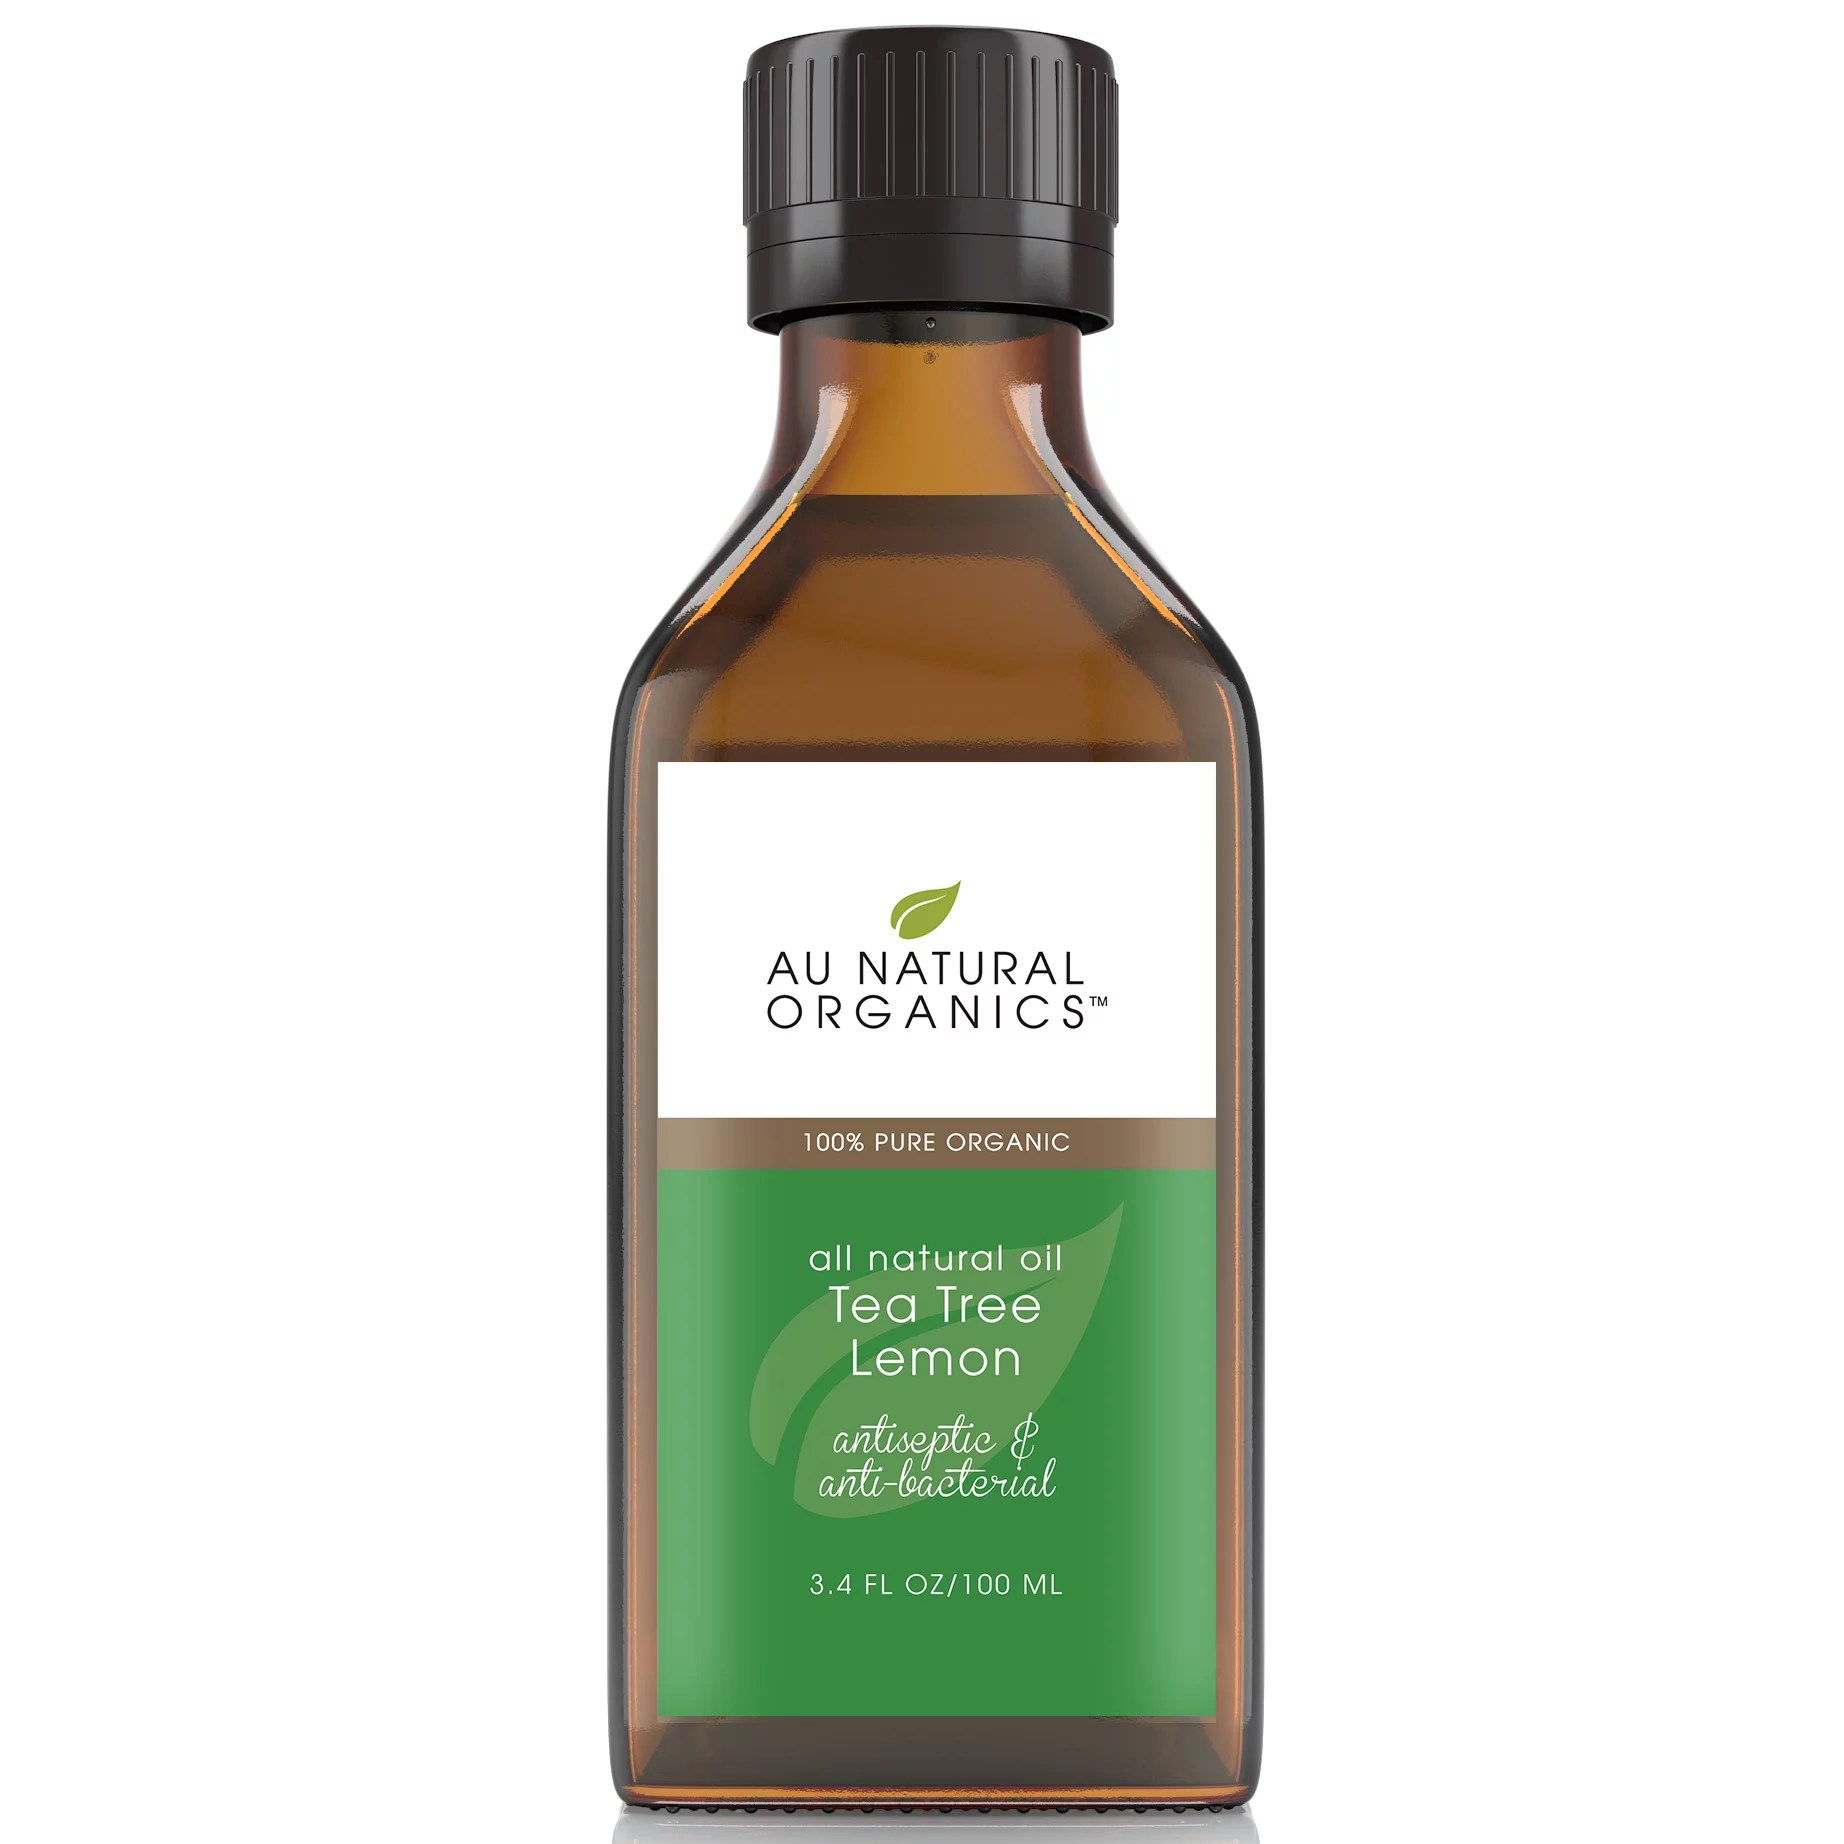 Tea Tree Lemon Oil - Tea Tree Oil